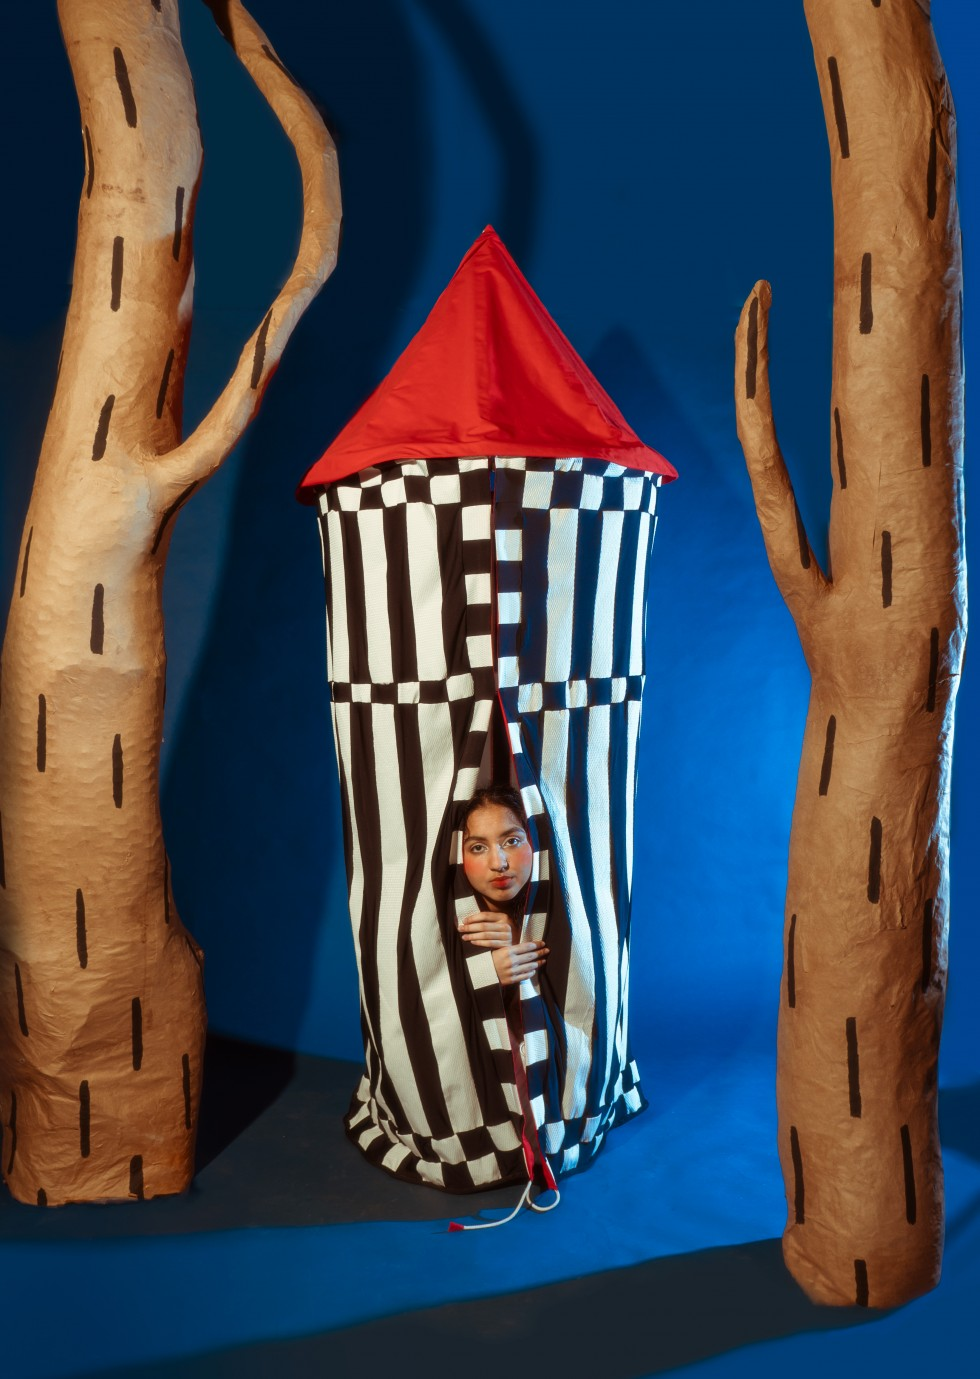 In the second image, the piece now hangs as a ten between the trees. The cape becomes the striped body of the tent and the red scarf is the roof. The model is peeking out of the tent looking directly at the camera, both of their hands resting on the tent